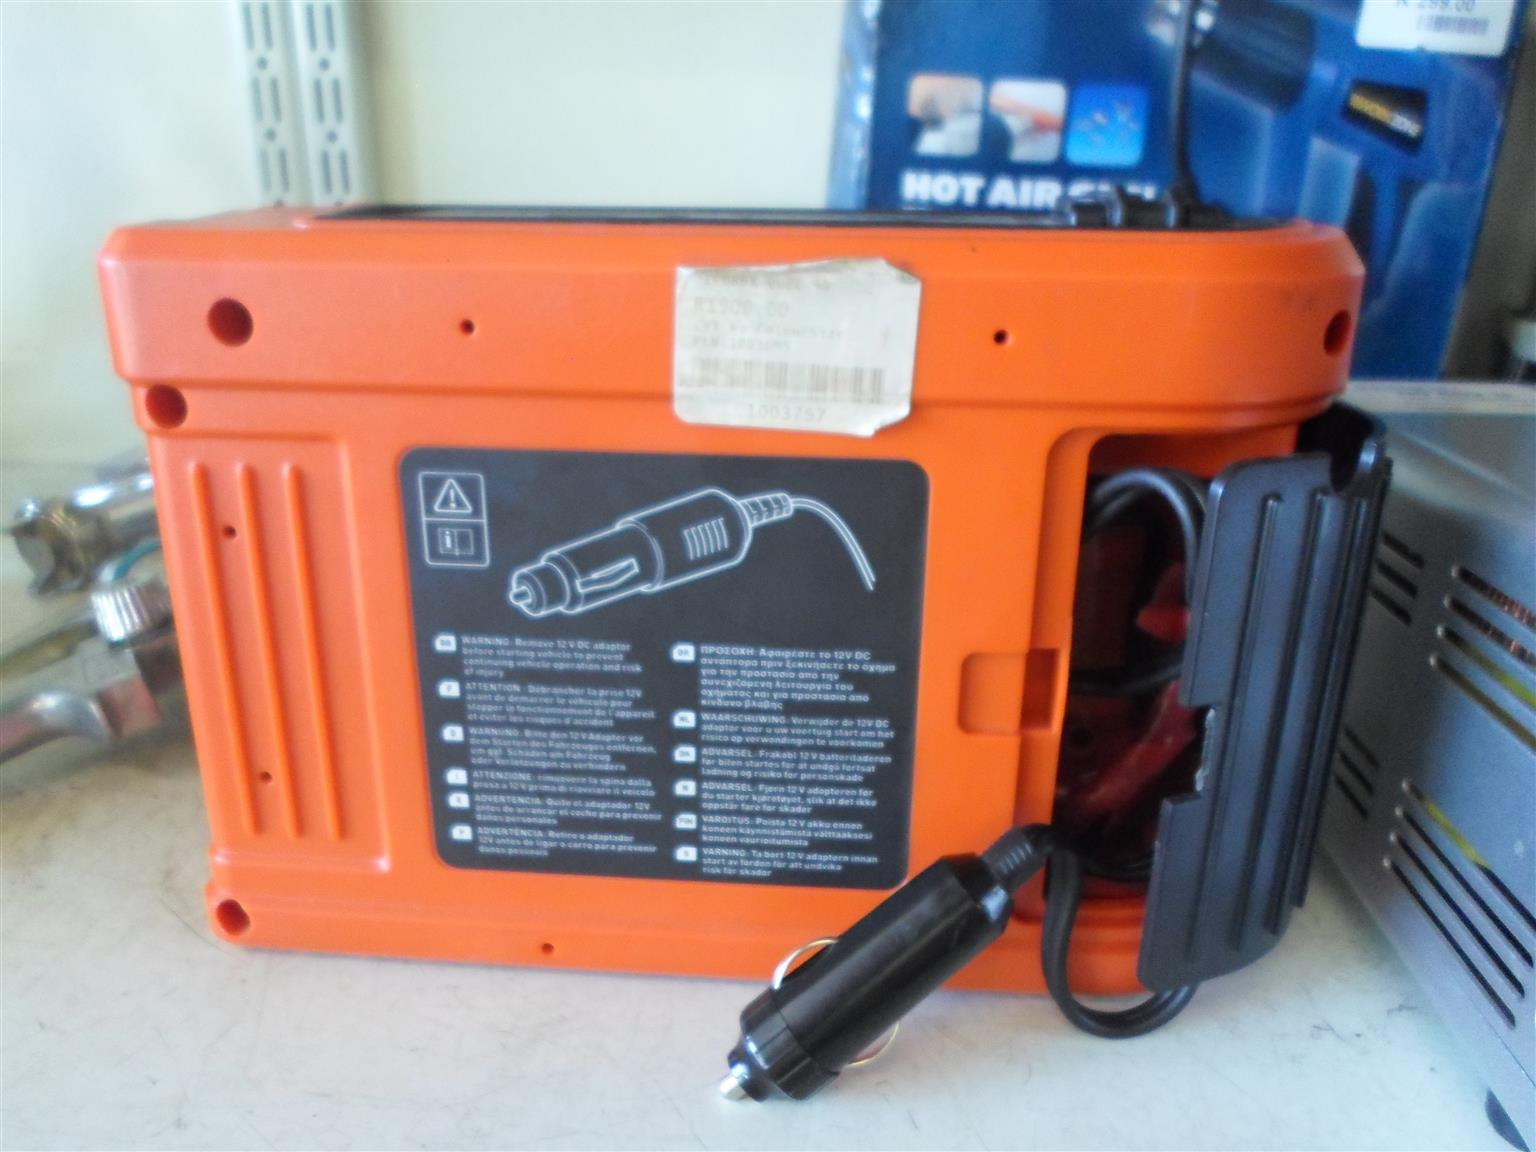 12V Black and Decker Jump Start Kit